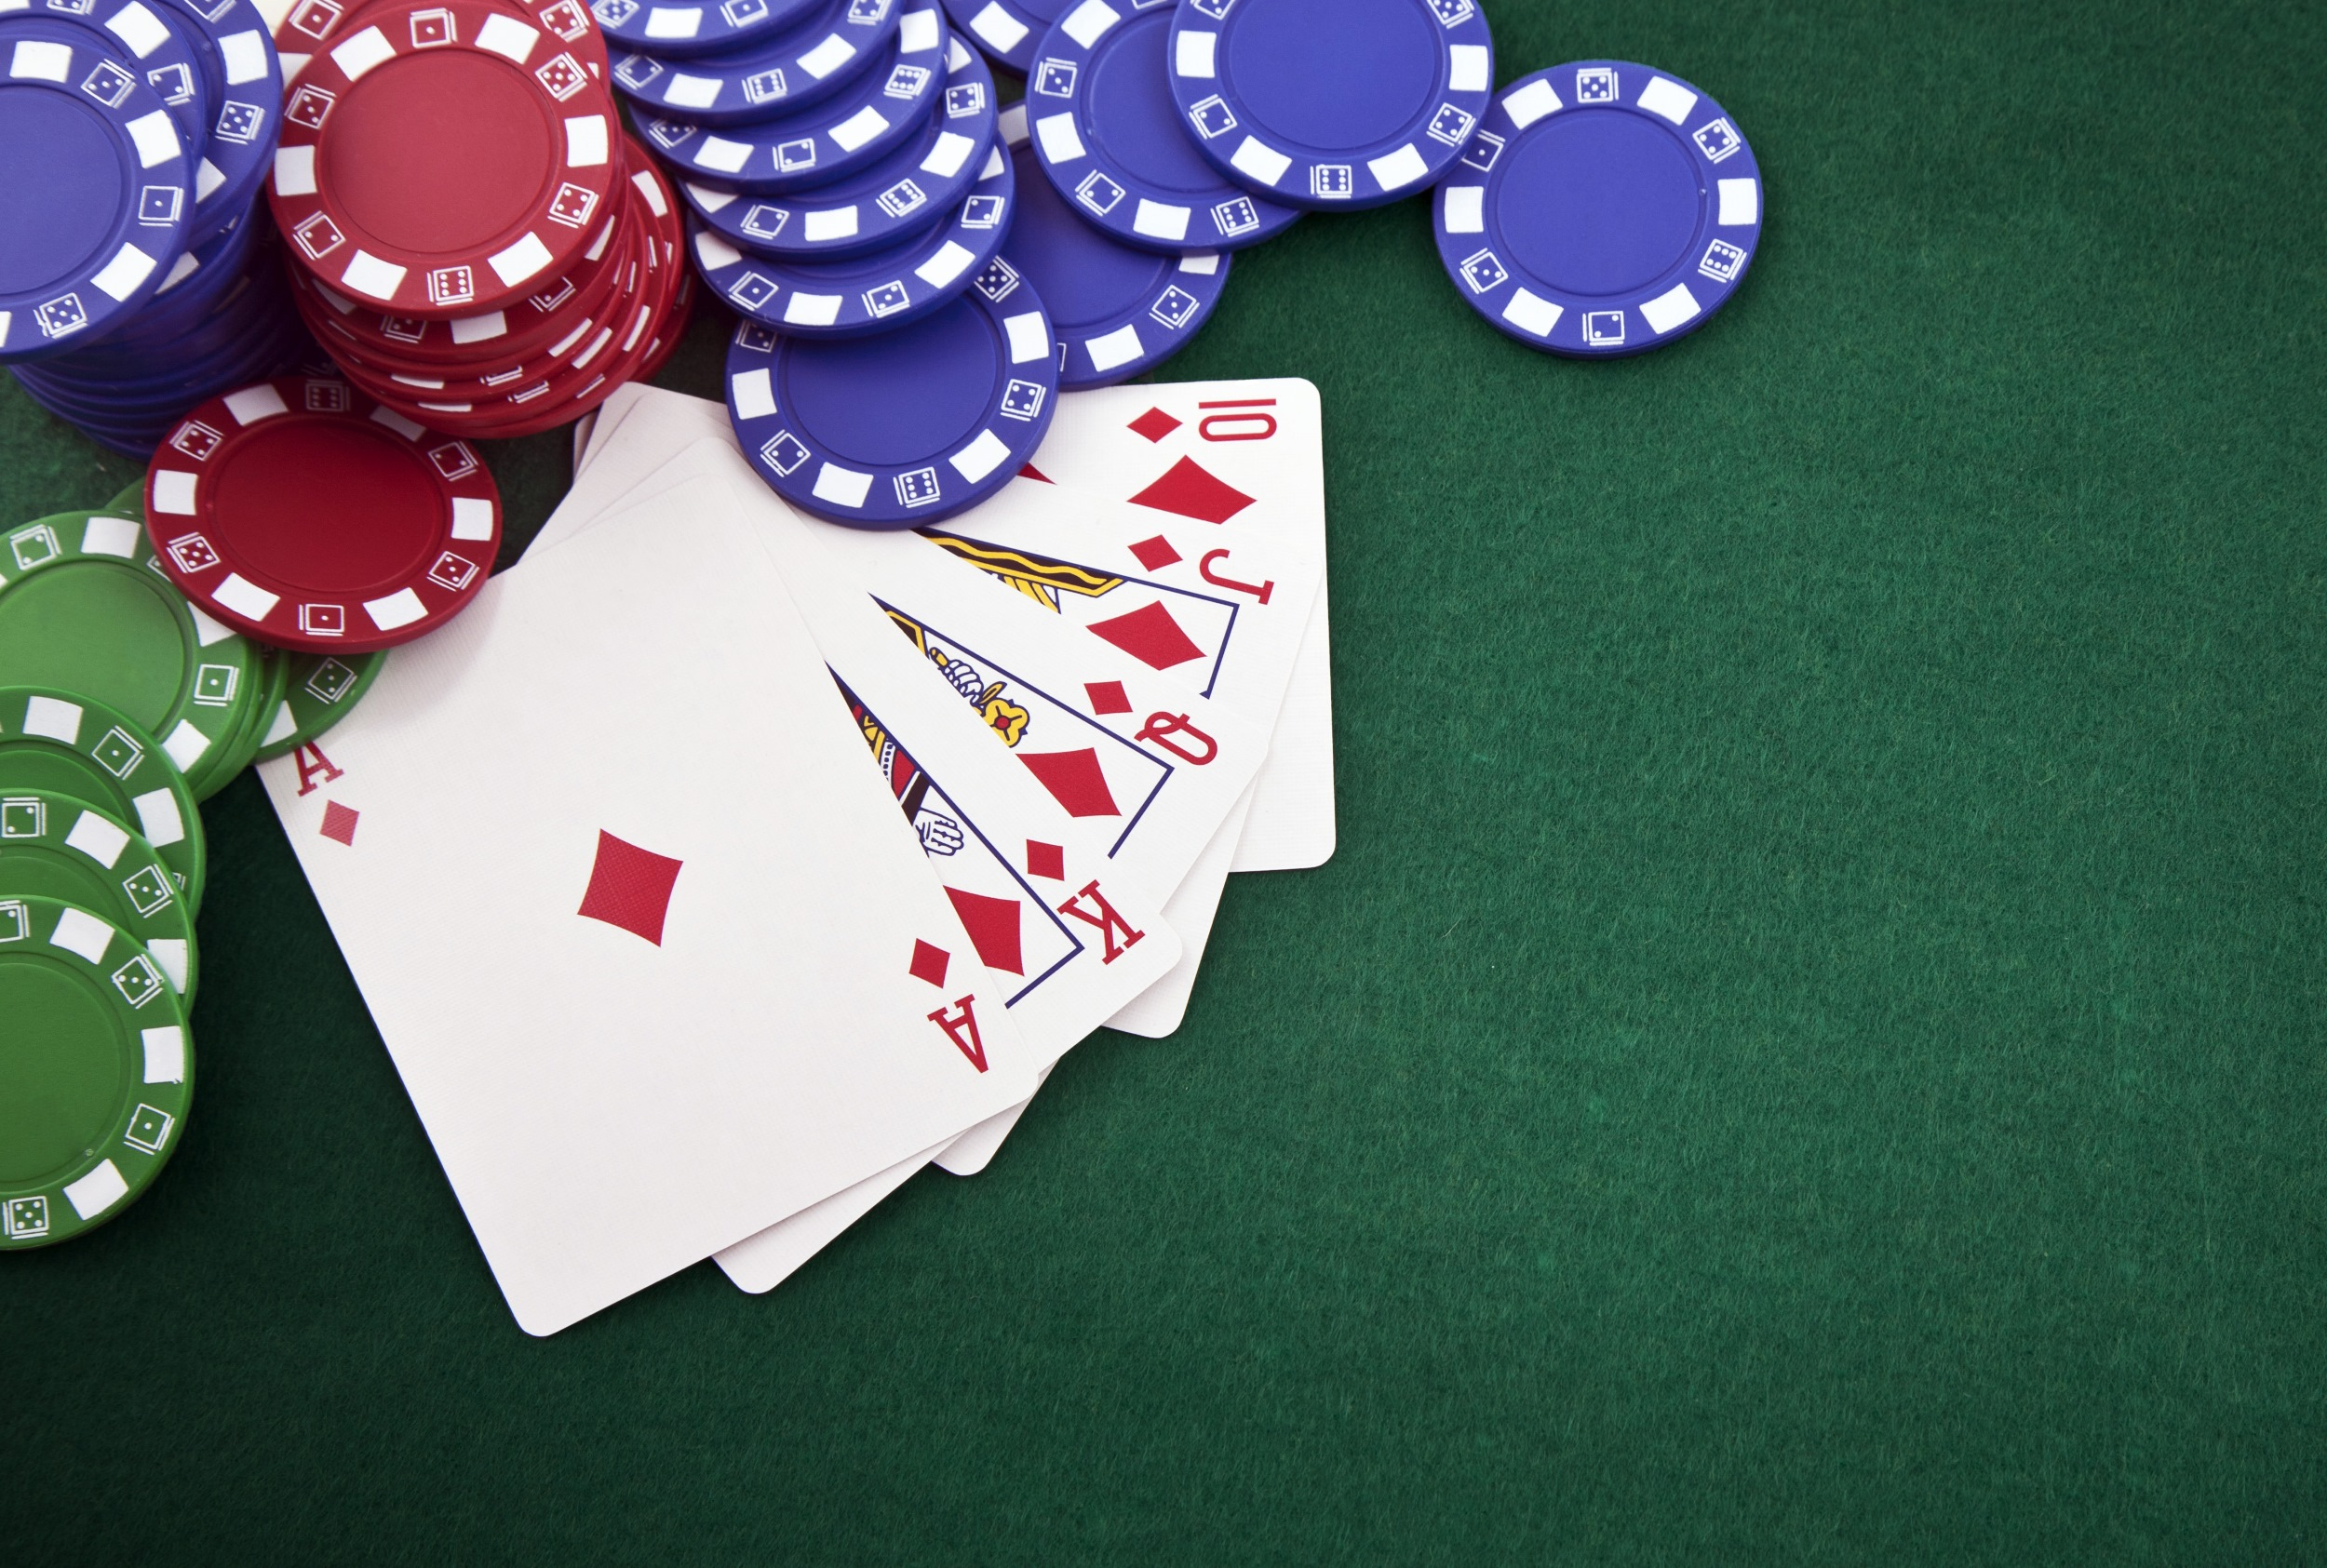 Develop ways to increase the winning chance of the top slot casino game